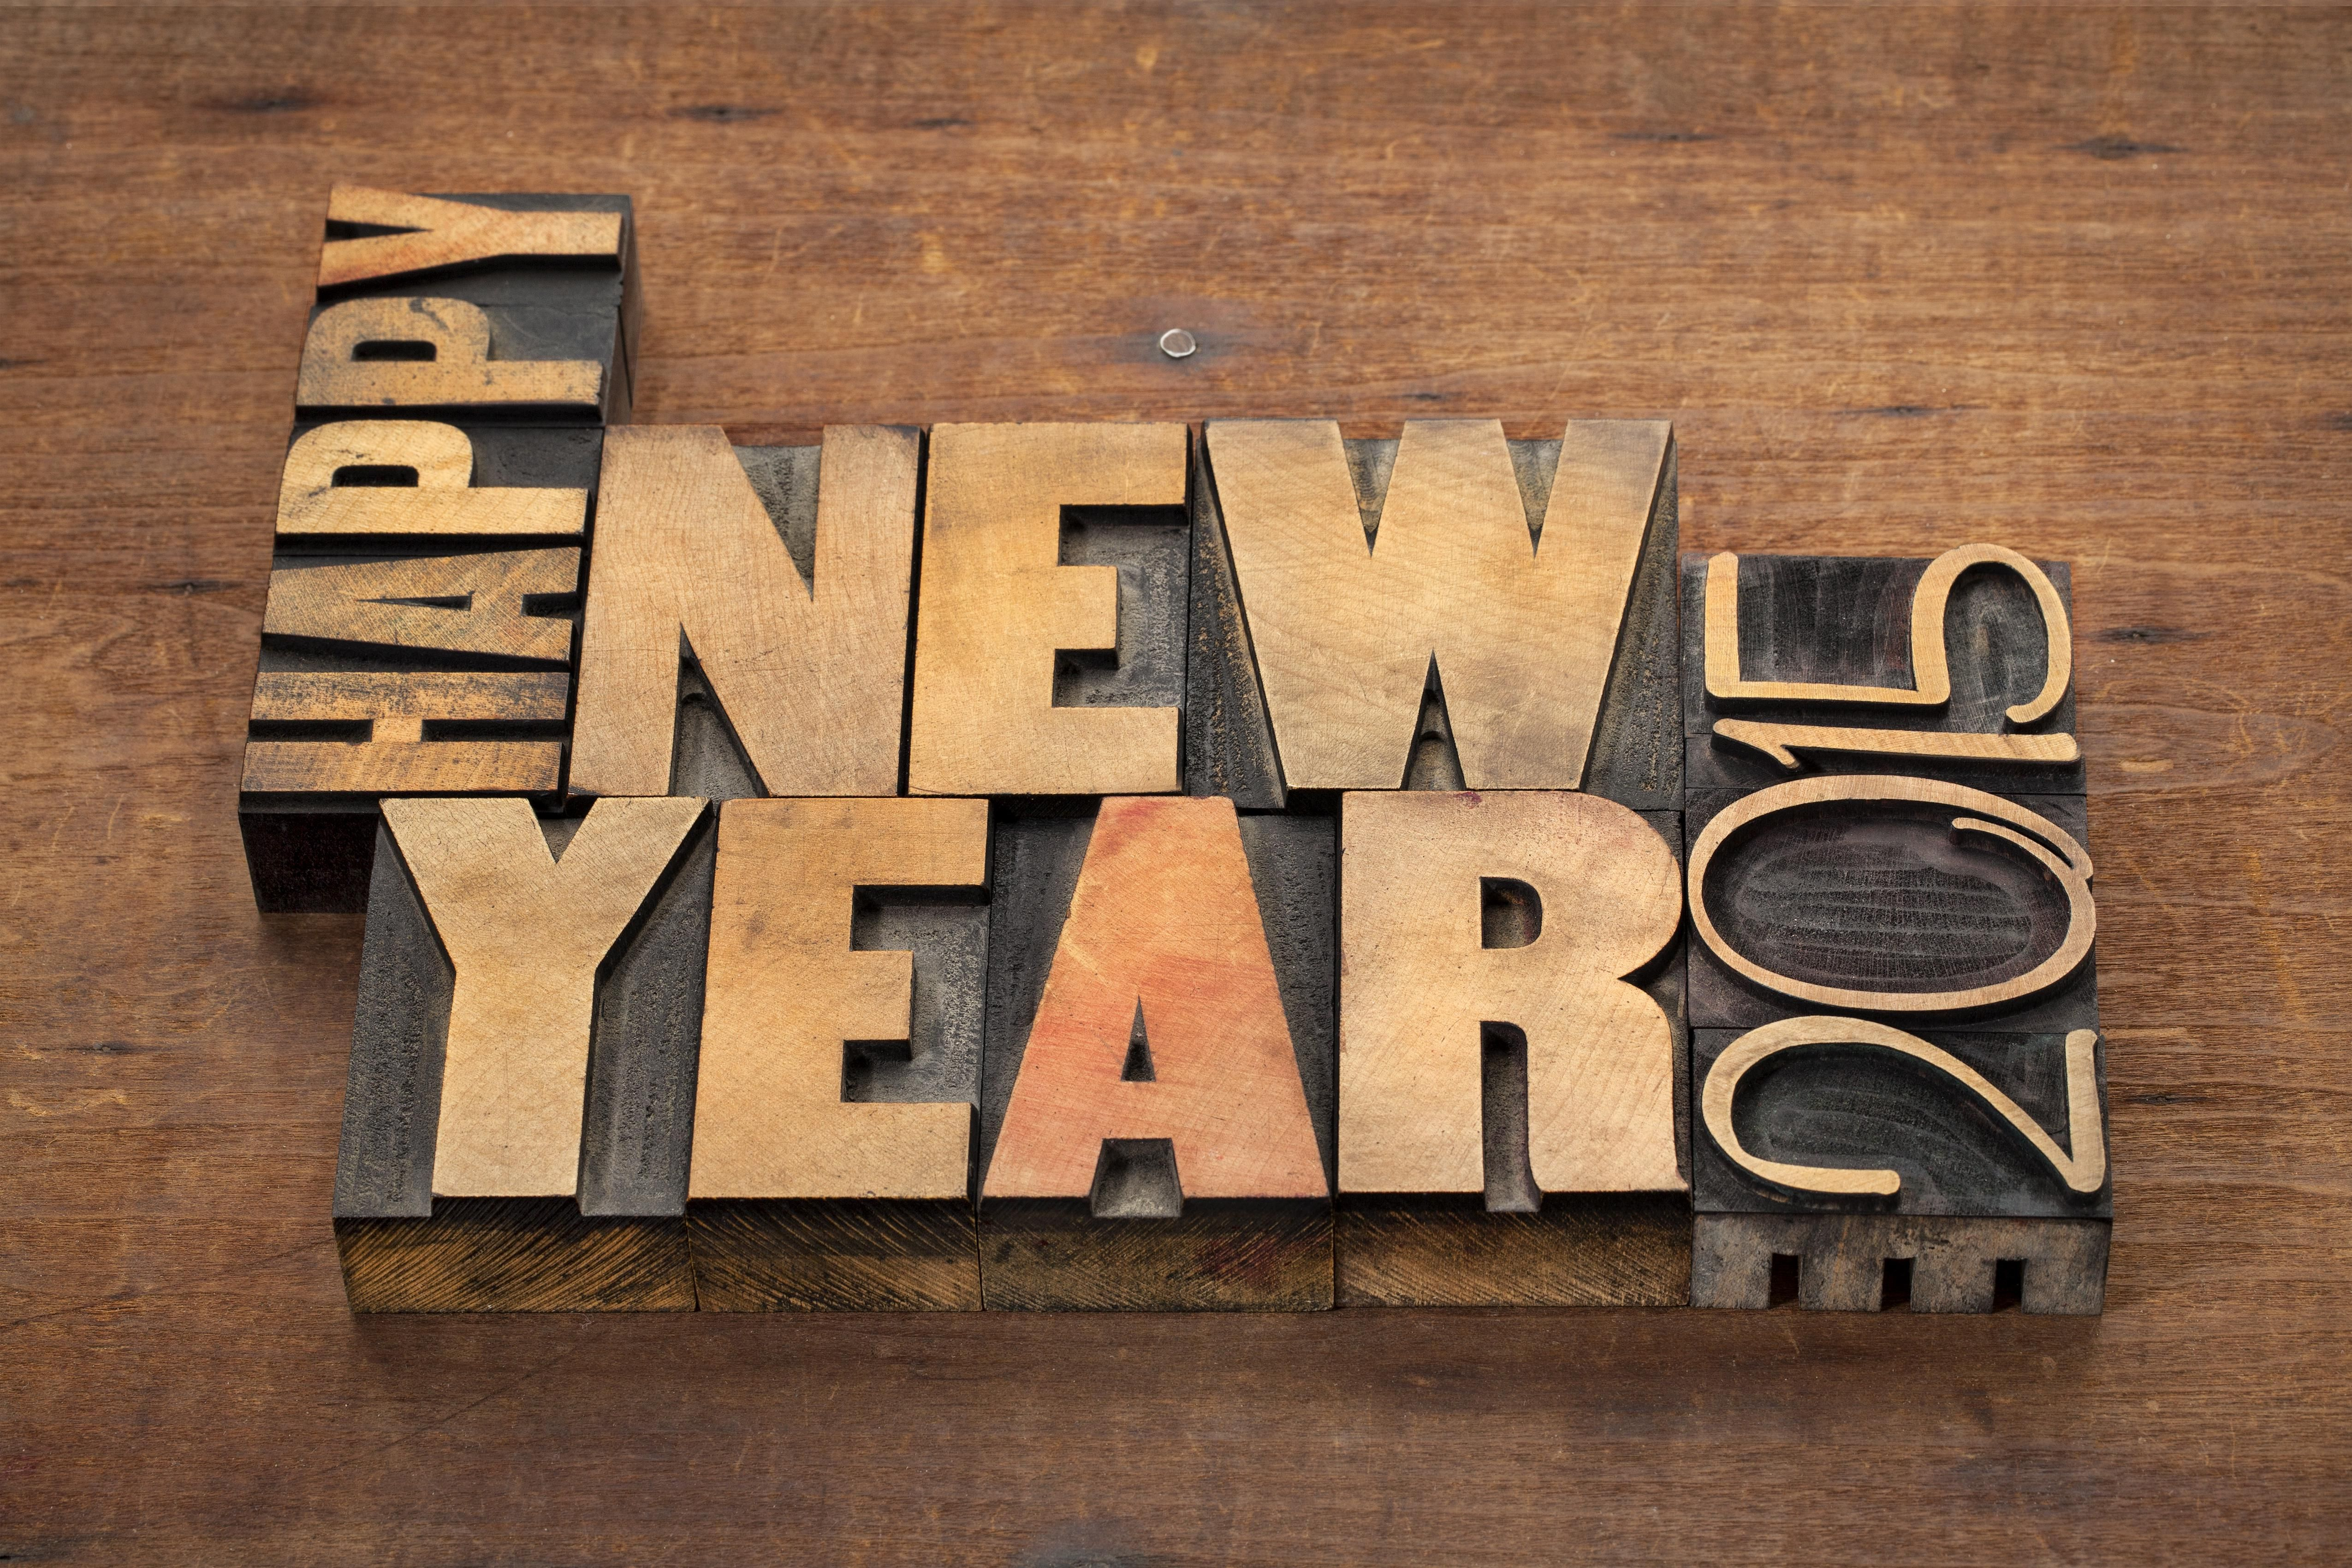 Free download happy new year wishes collection 2015 wallpapers pics free download happy new year wishes collection 2015 wallpapers pics images pictures get sms quotes messages status for facebook whatsapp pinterest m4hsunfo